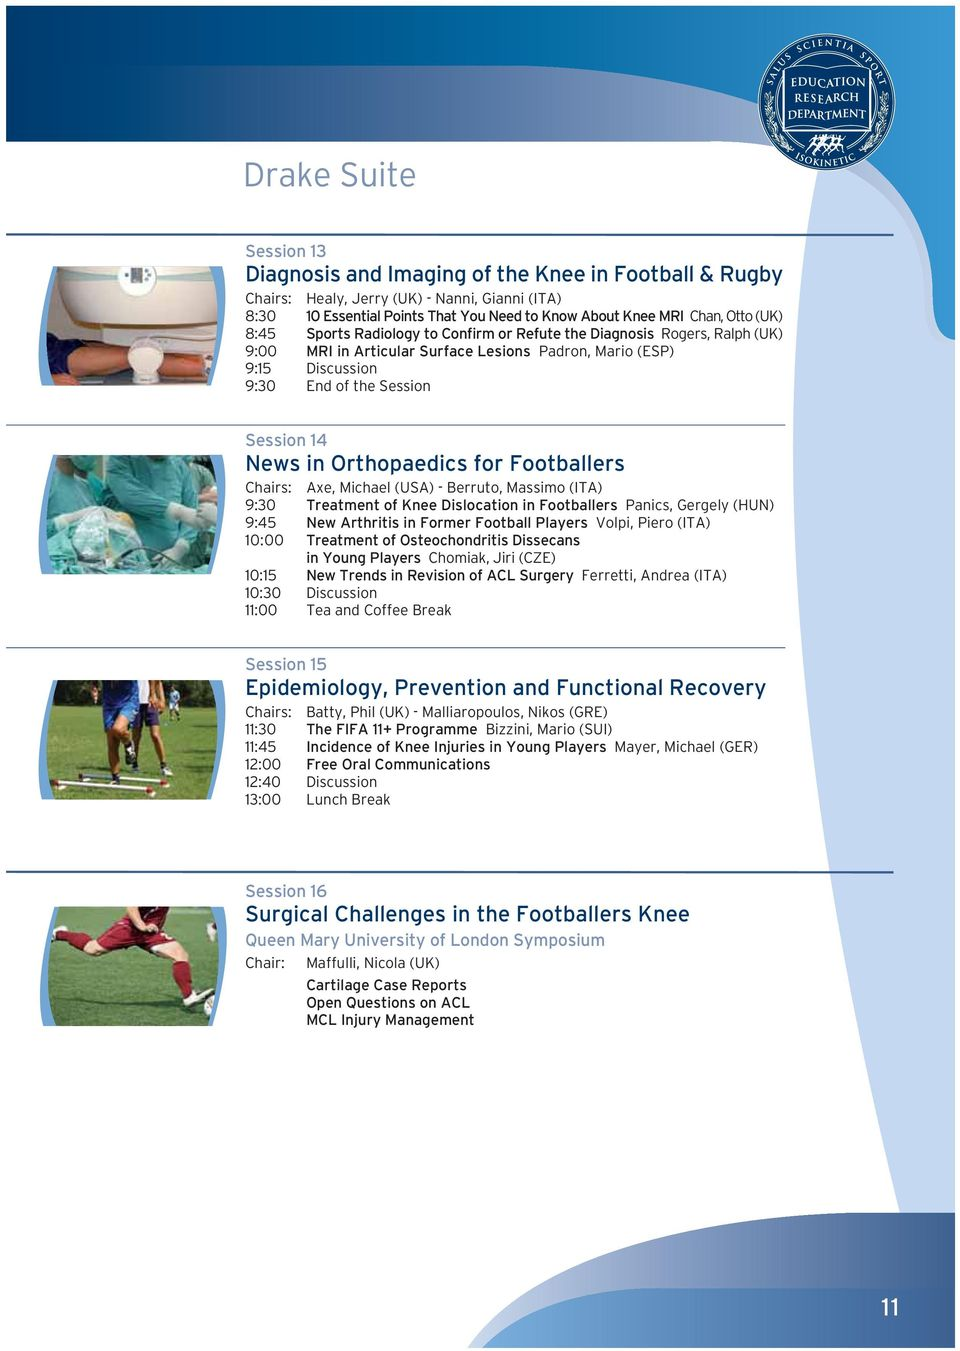 Orthopaedics for Footballers Chairs: Axe, Michael (USA) - Berruto, Massimo (ITA) 9:30 Treatment of Knee Dislocation in Footballers Panics, Gergely (HUN) 9:45 New Arthritis in Former Football Players